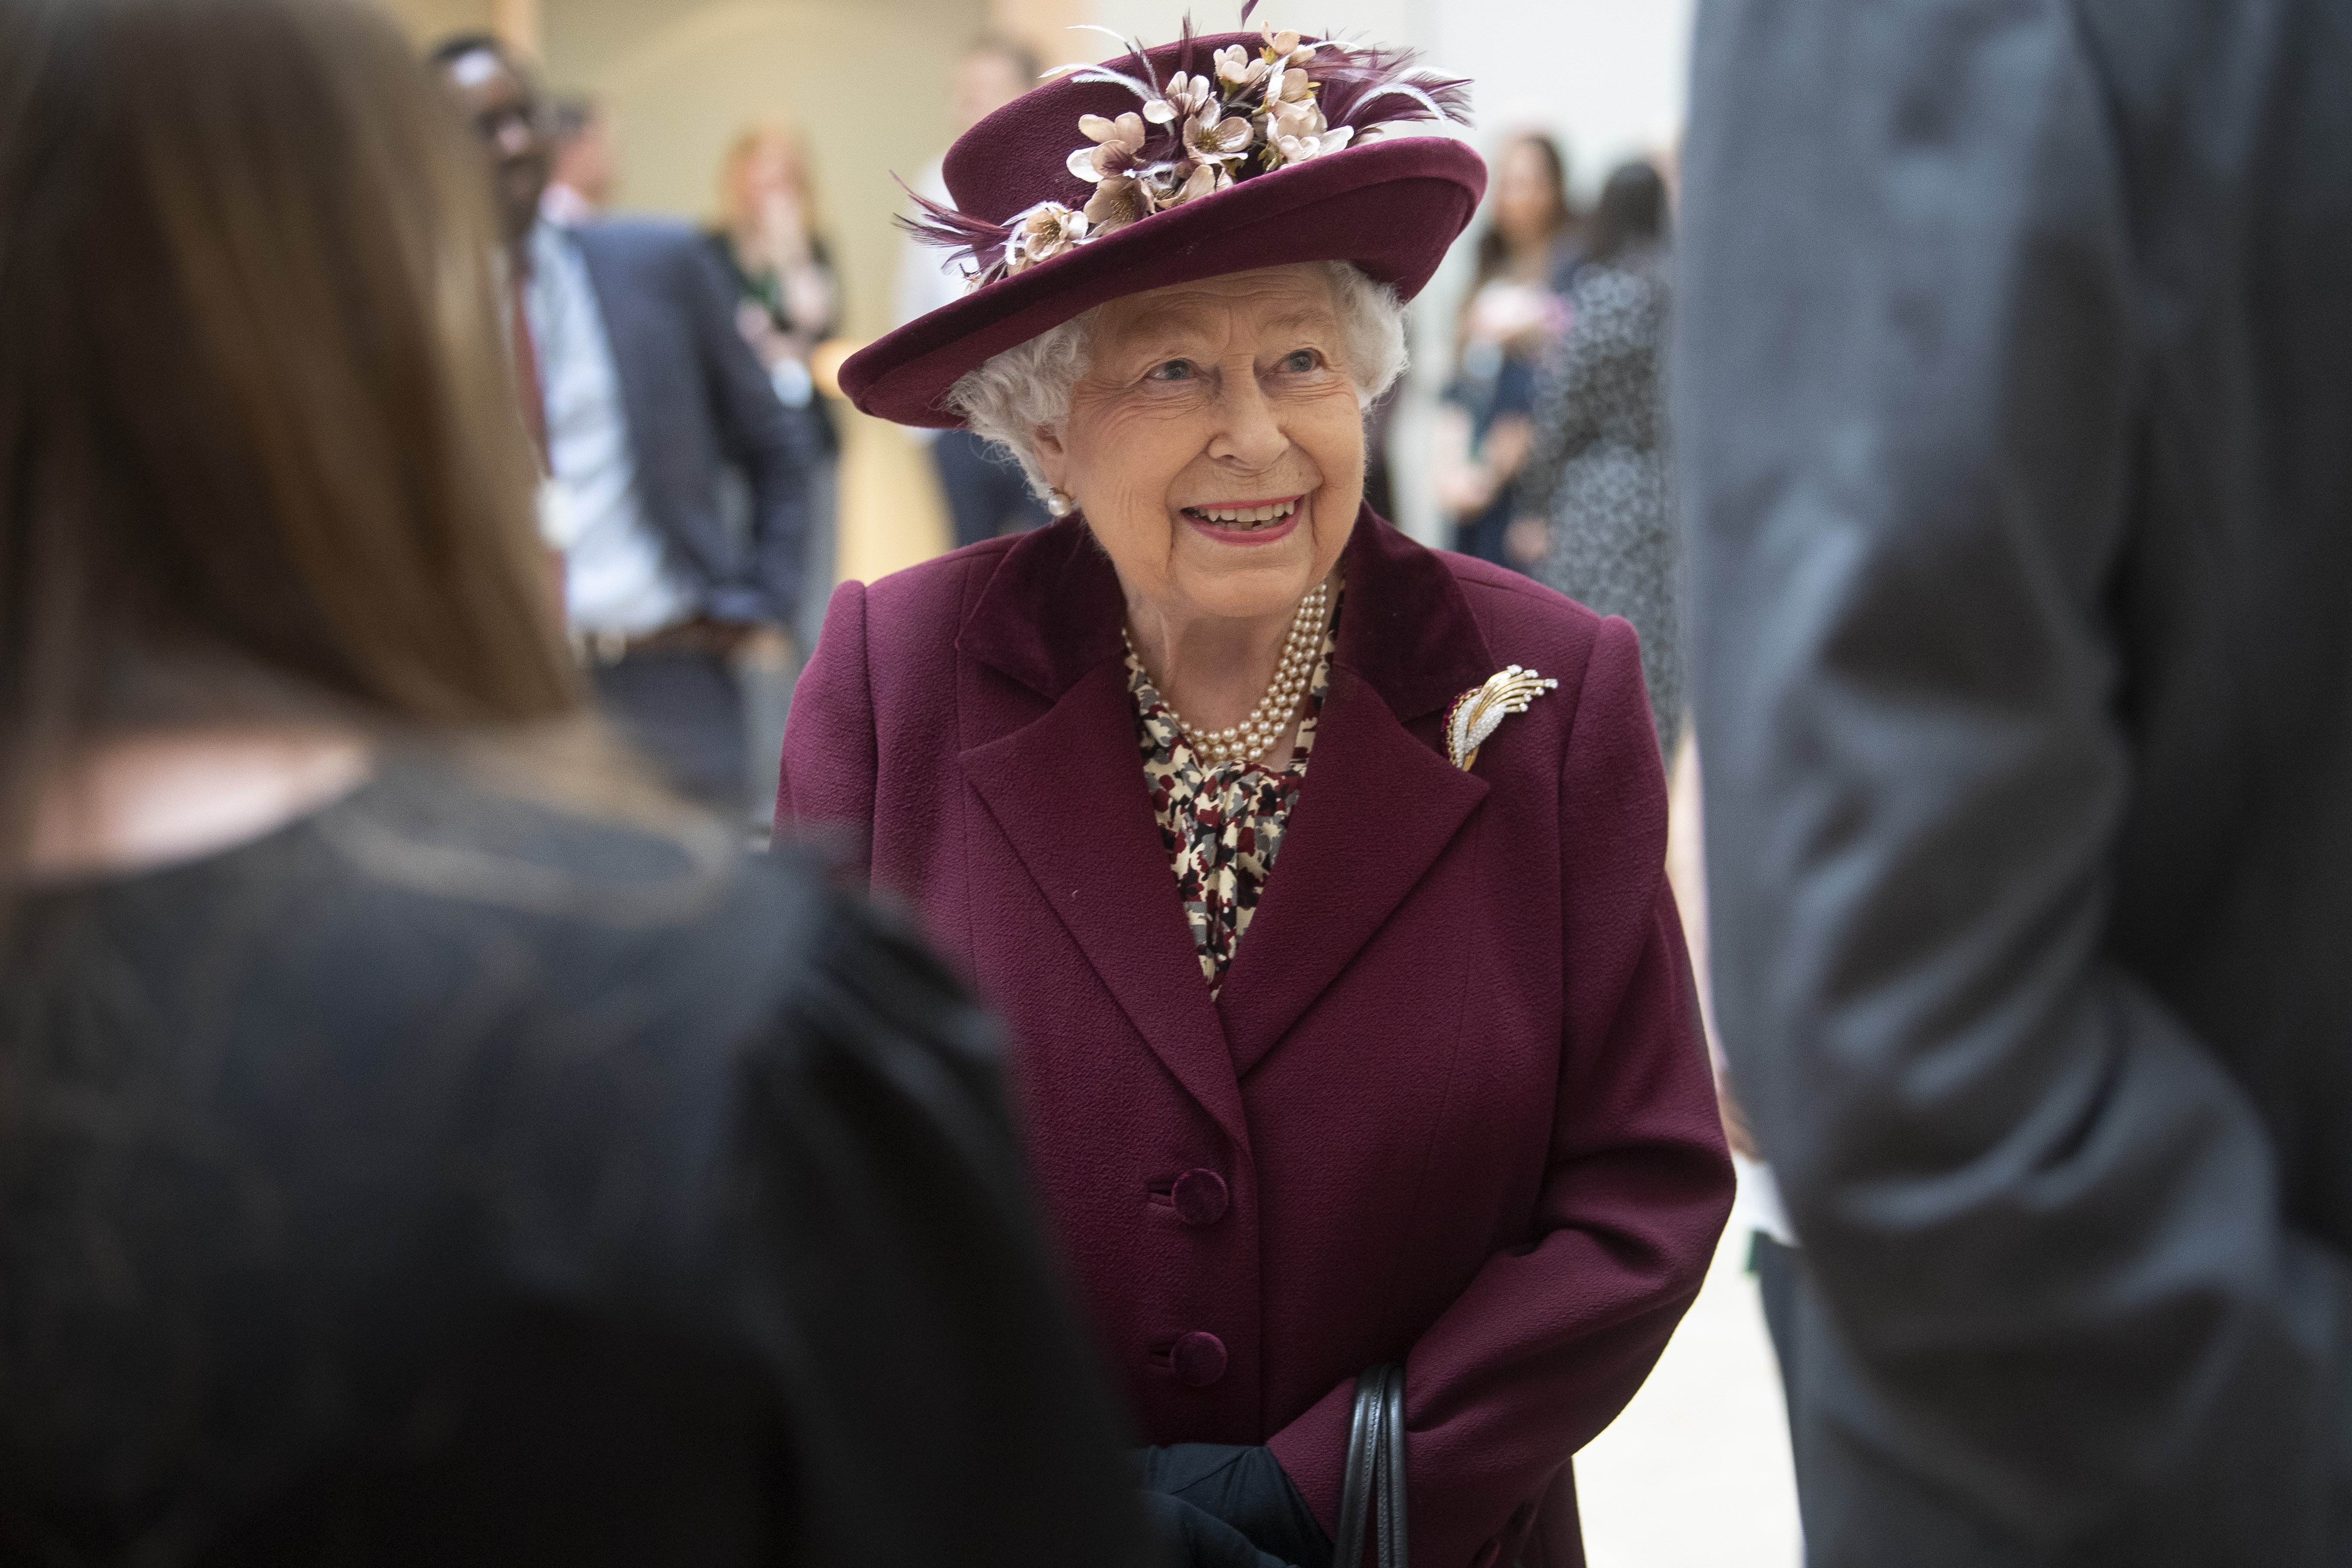 Queen Elizabeth II talks with MI5 officers during a visit to the headquarters of MI5 at Thames House on February 25, 2020, in London, England. | Source: Getty Images.